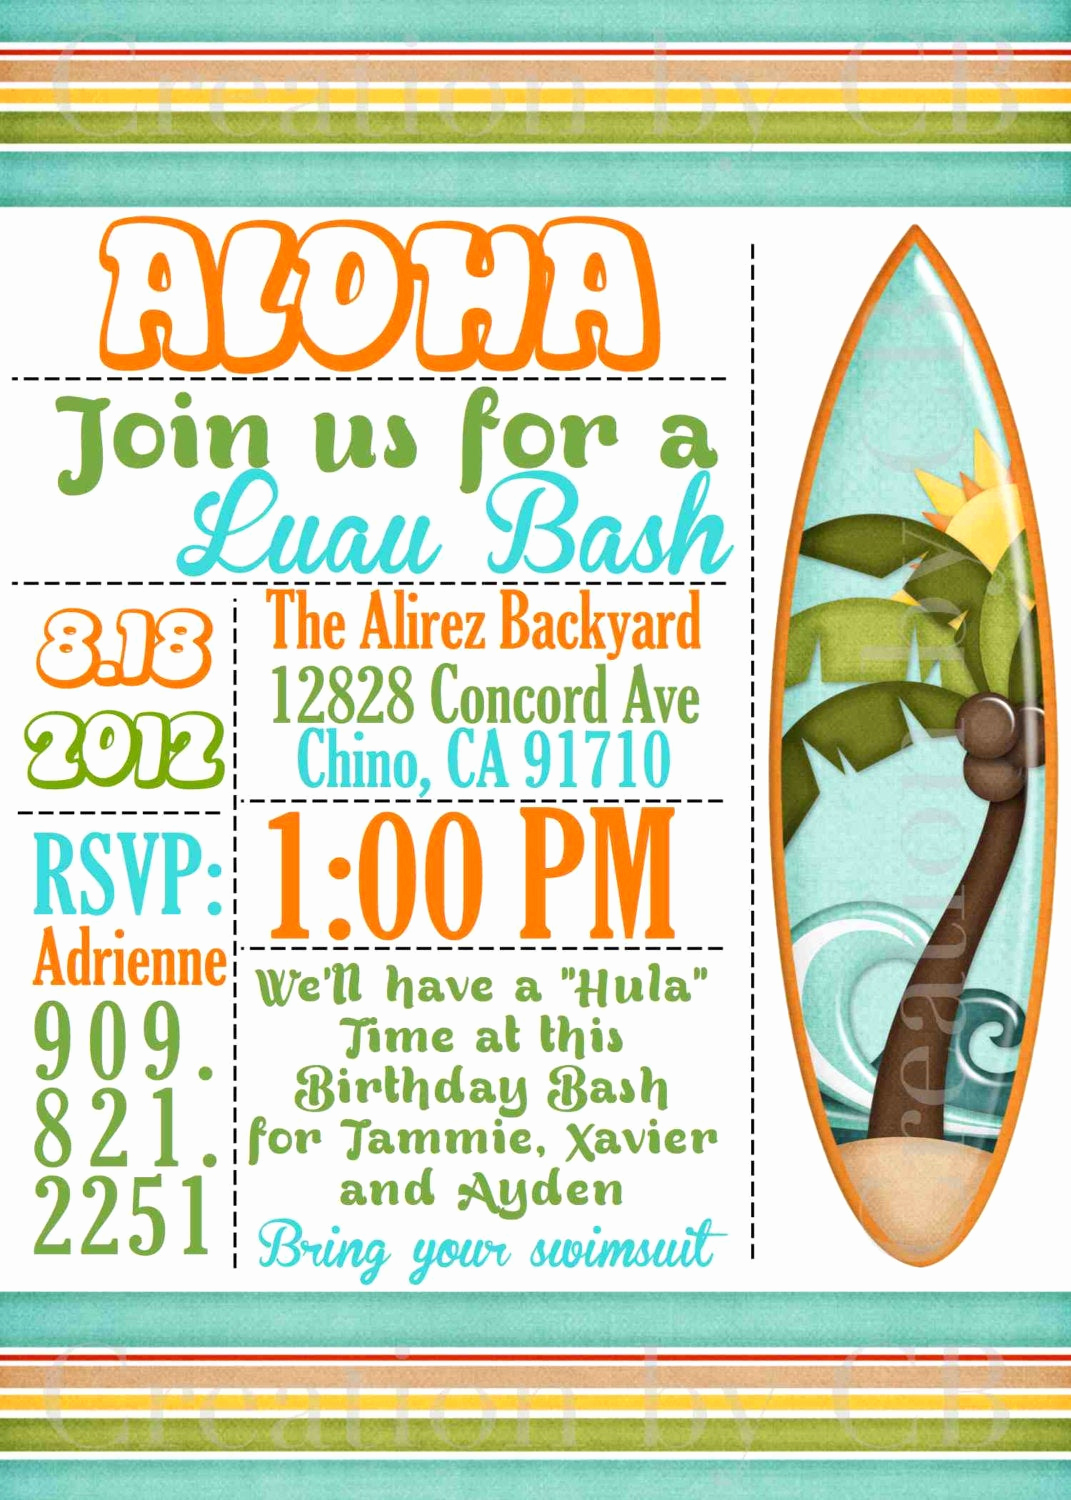 Potluck Bbq Invitation Wording Unique Luau Bash Invitation Birthday Invitation Potluck by